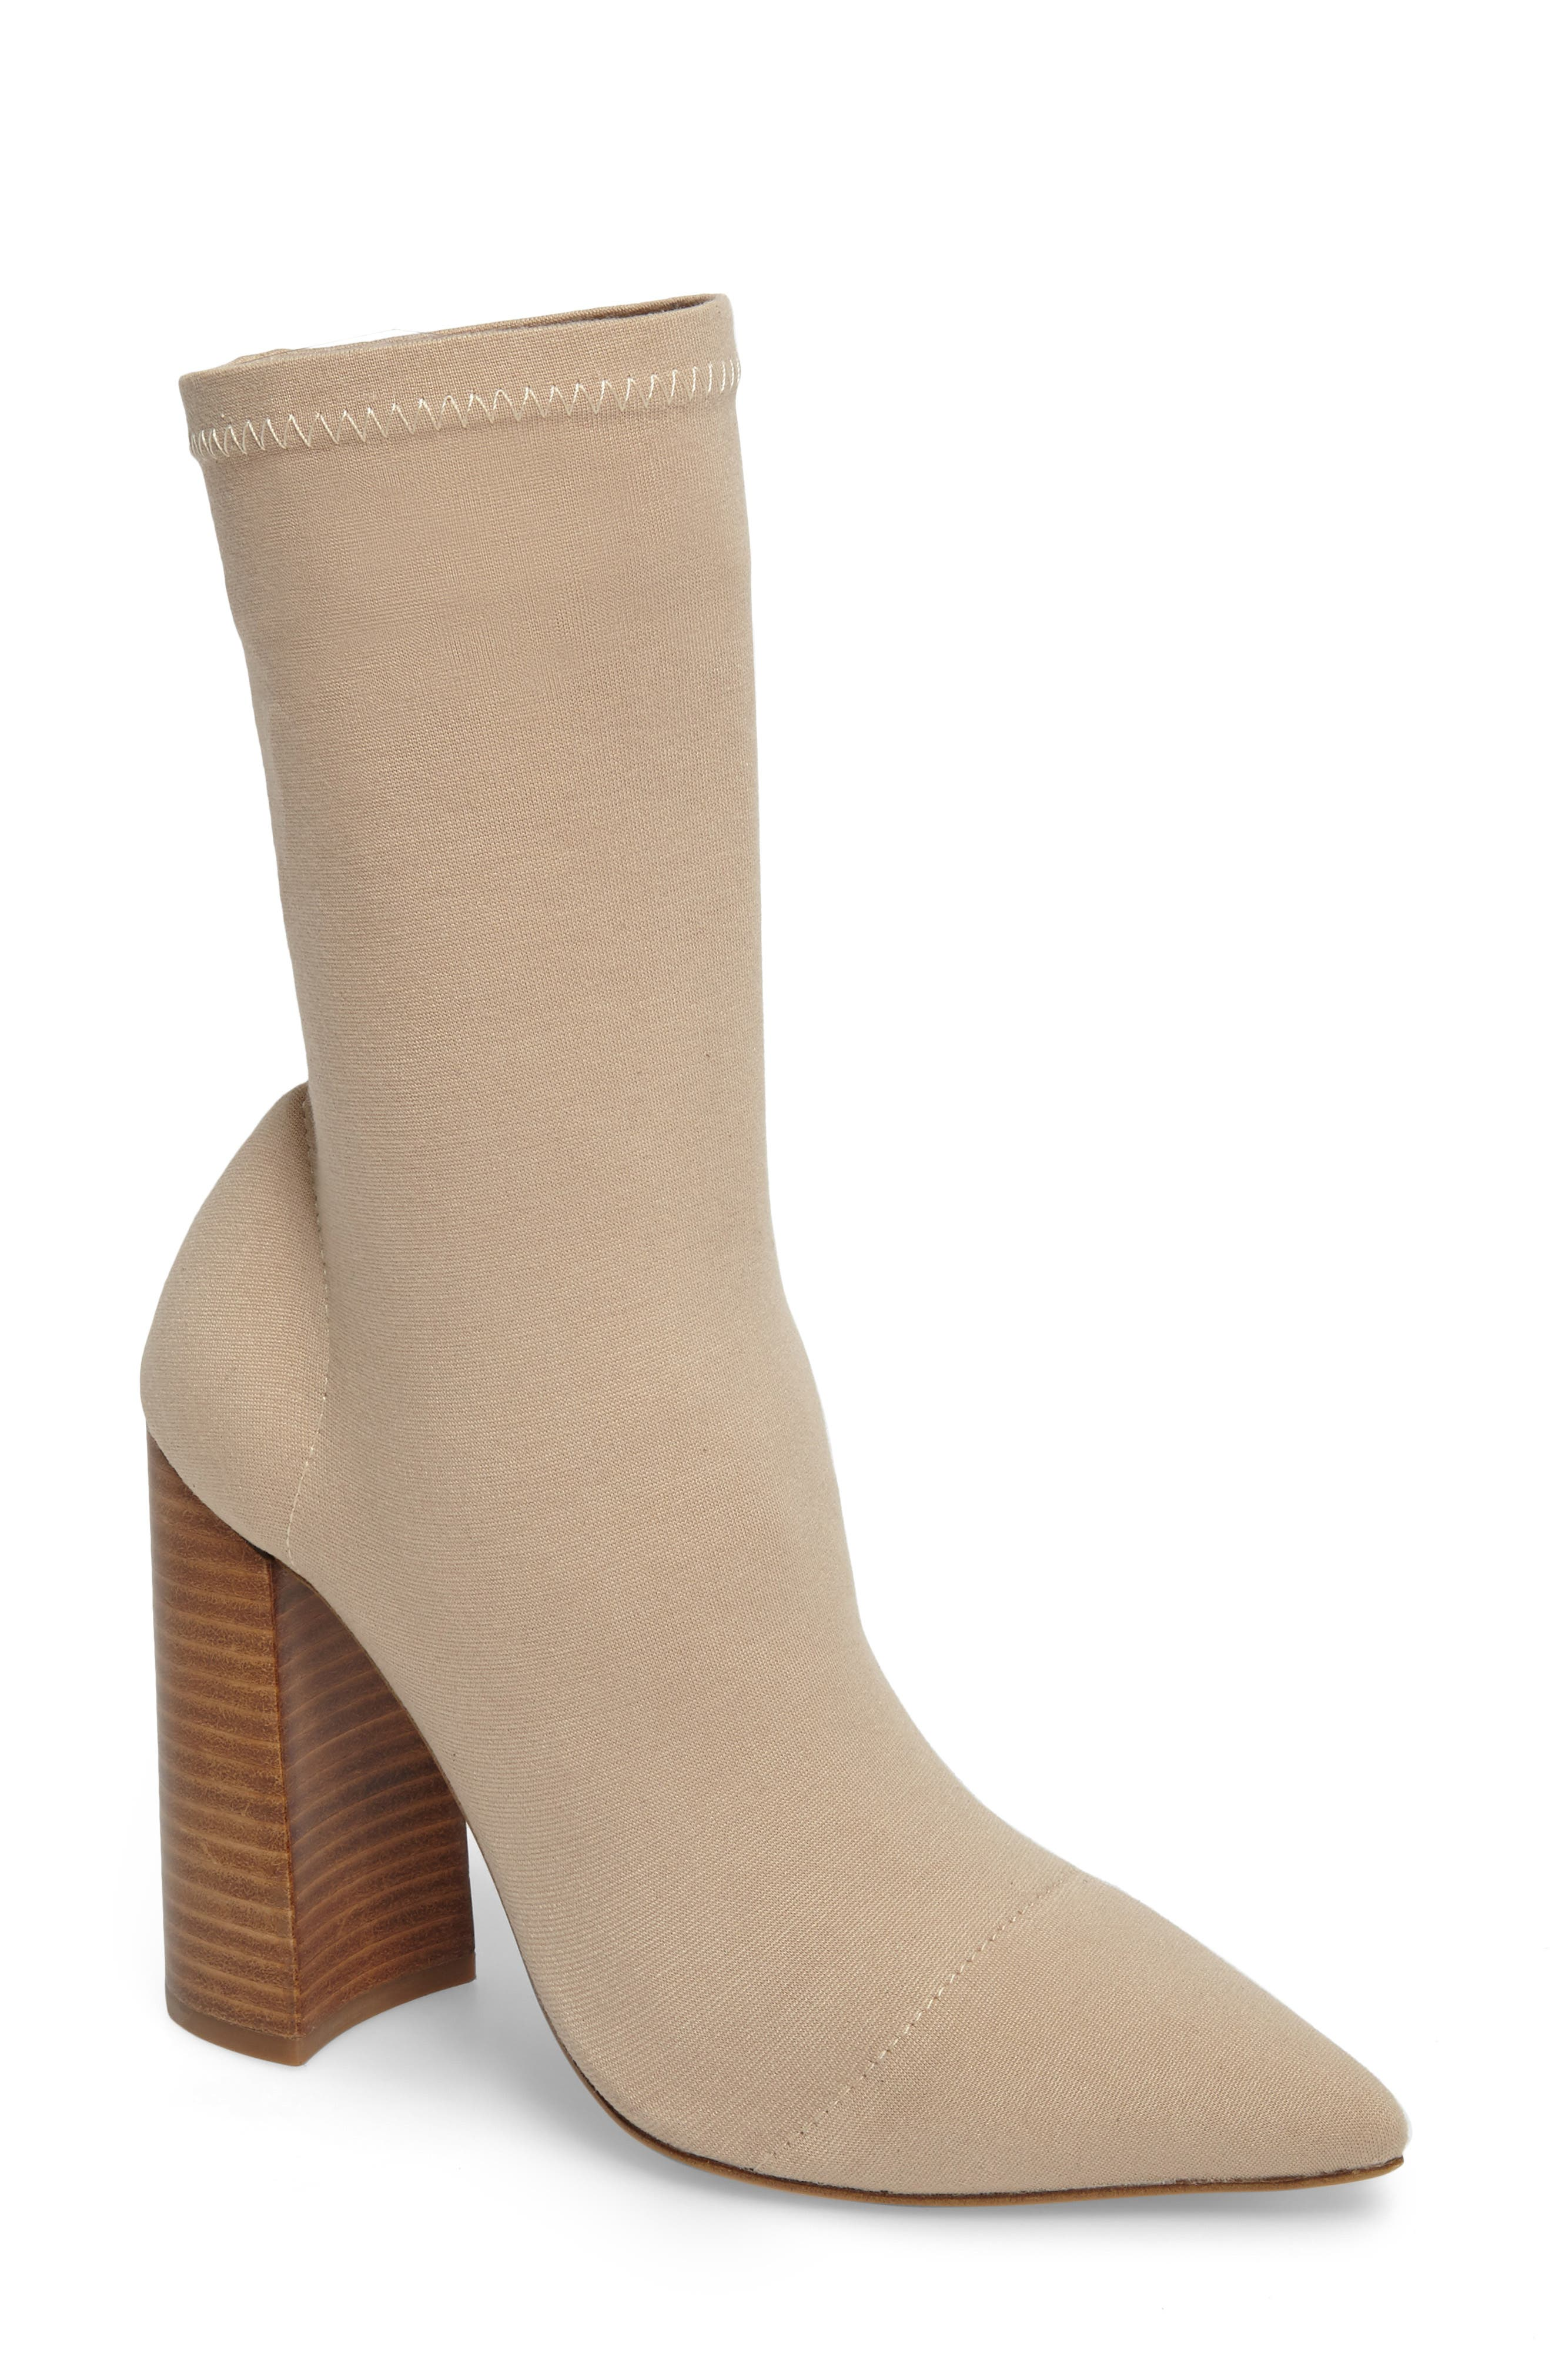 Diddy Velvet Bootie,                         Main,                         color, 270